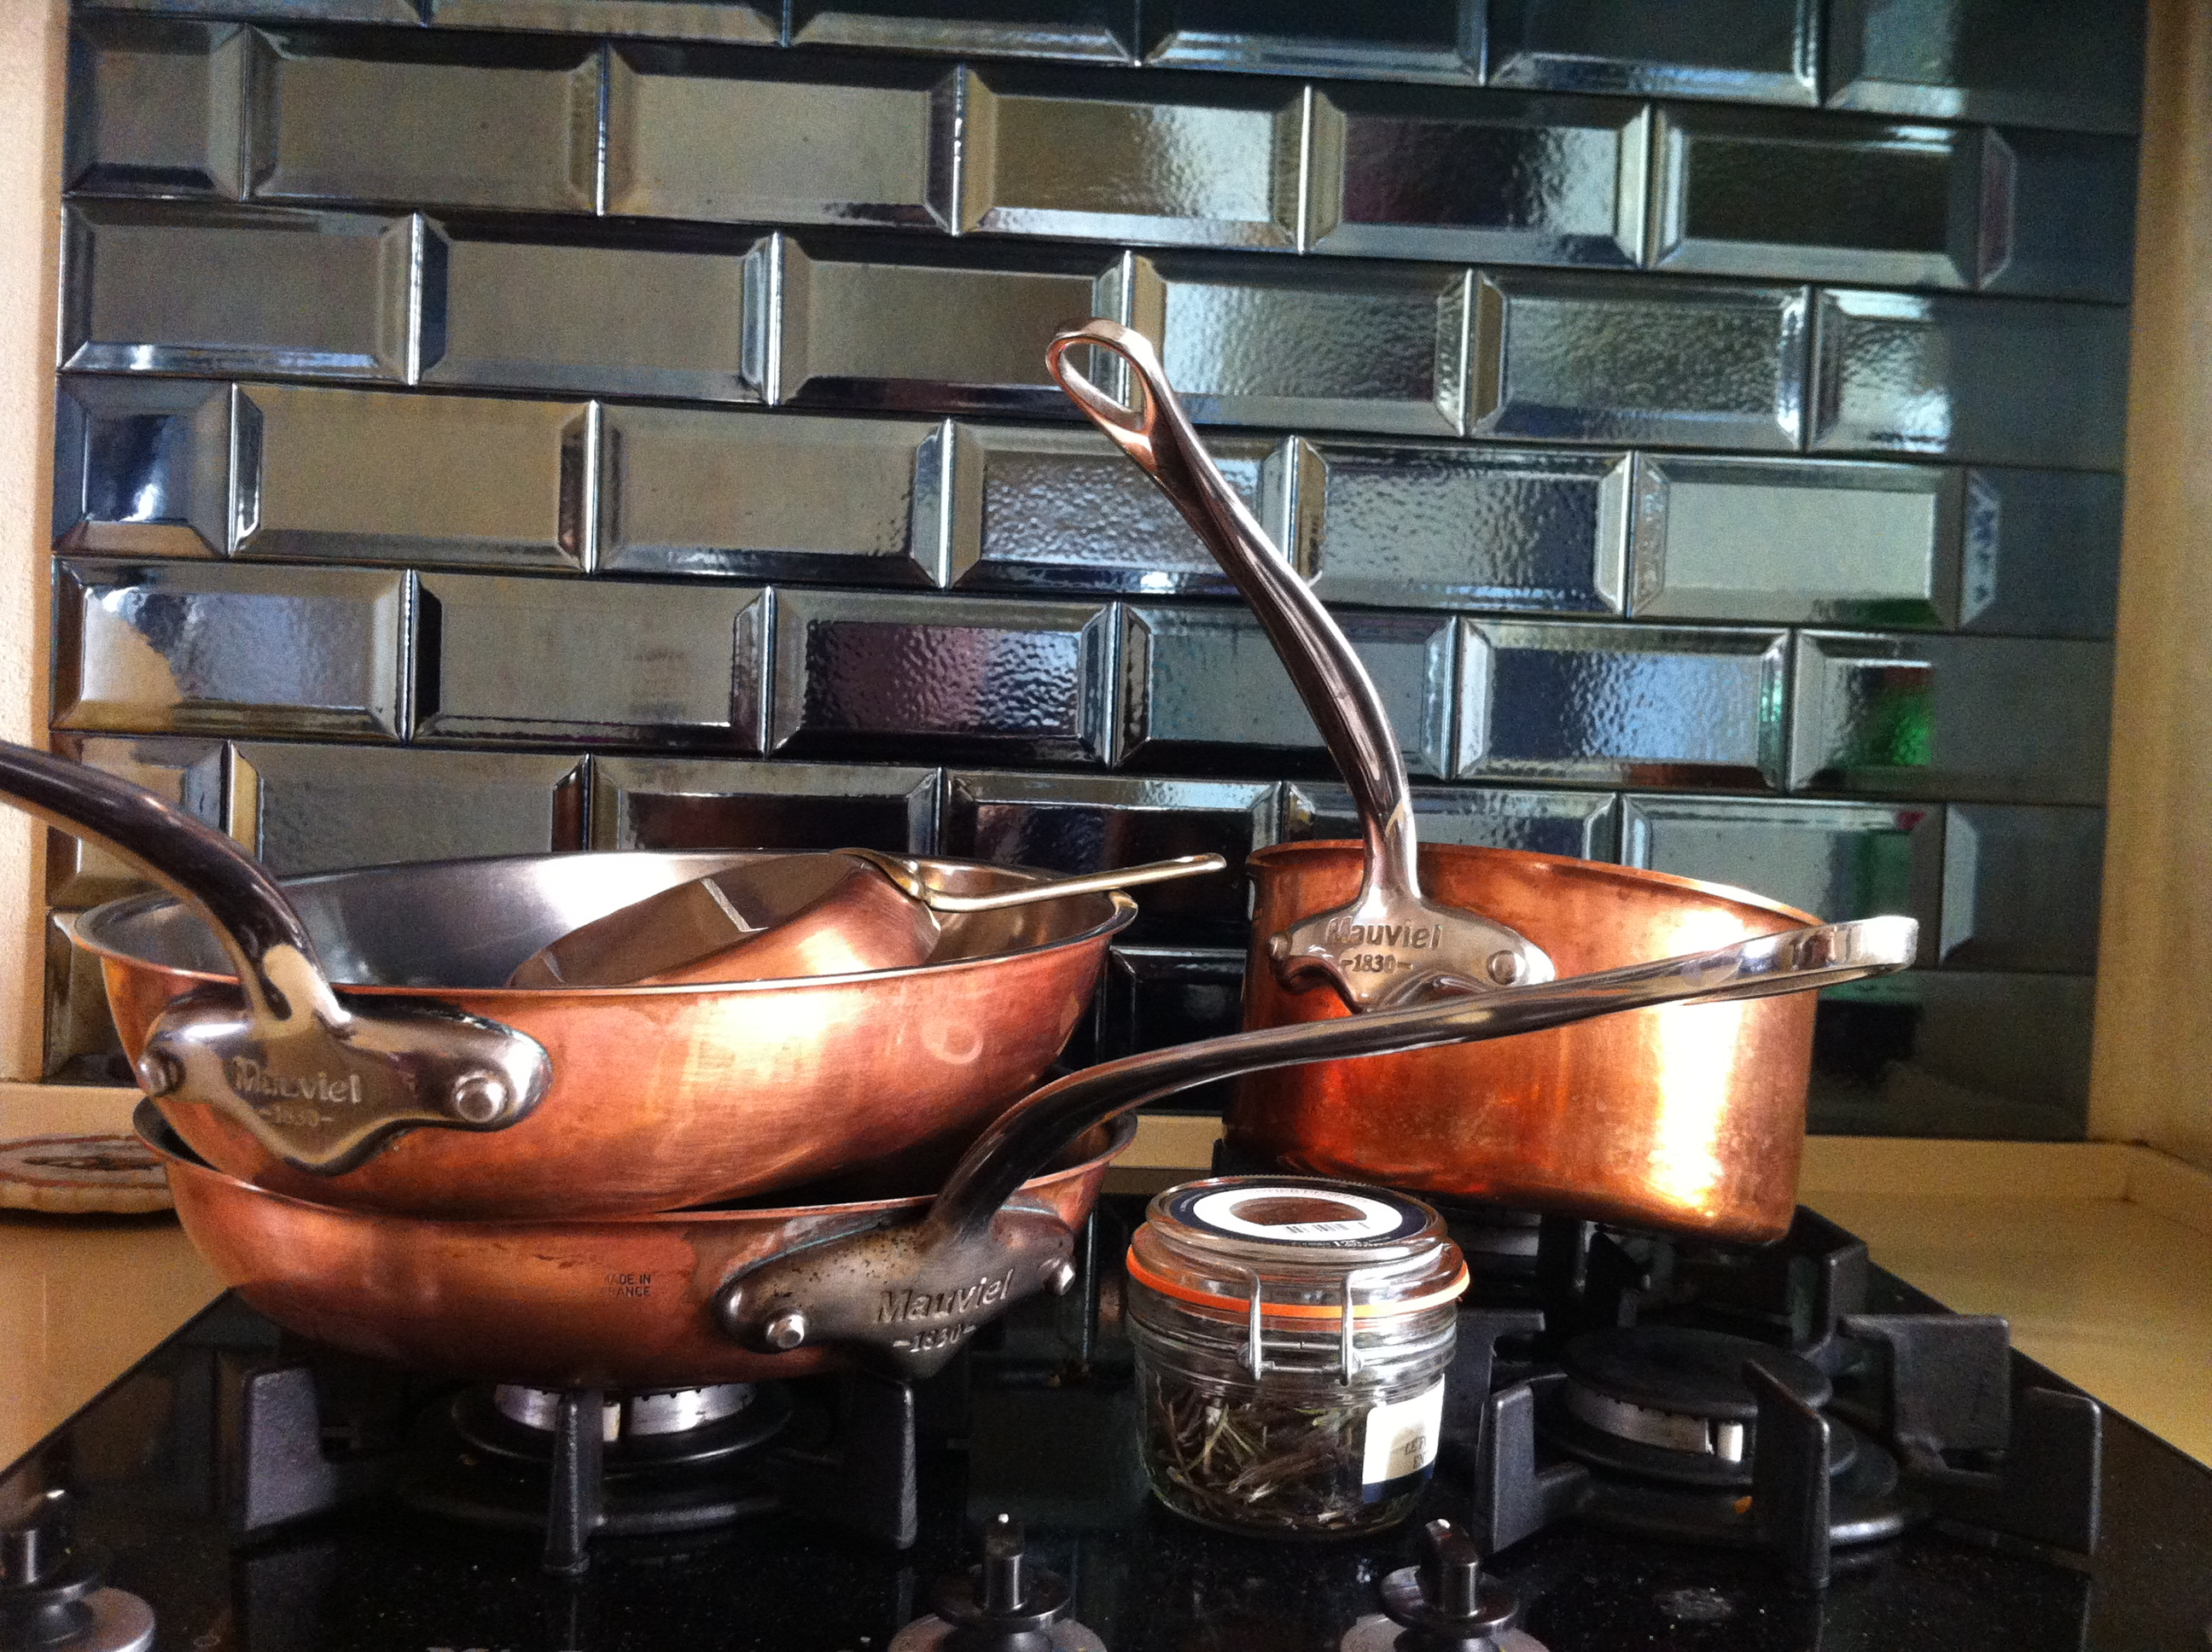 What's in my kitchen: pots & pans!